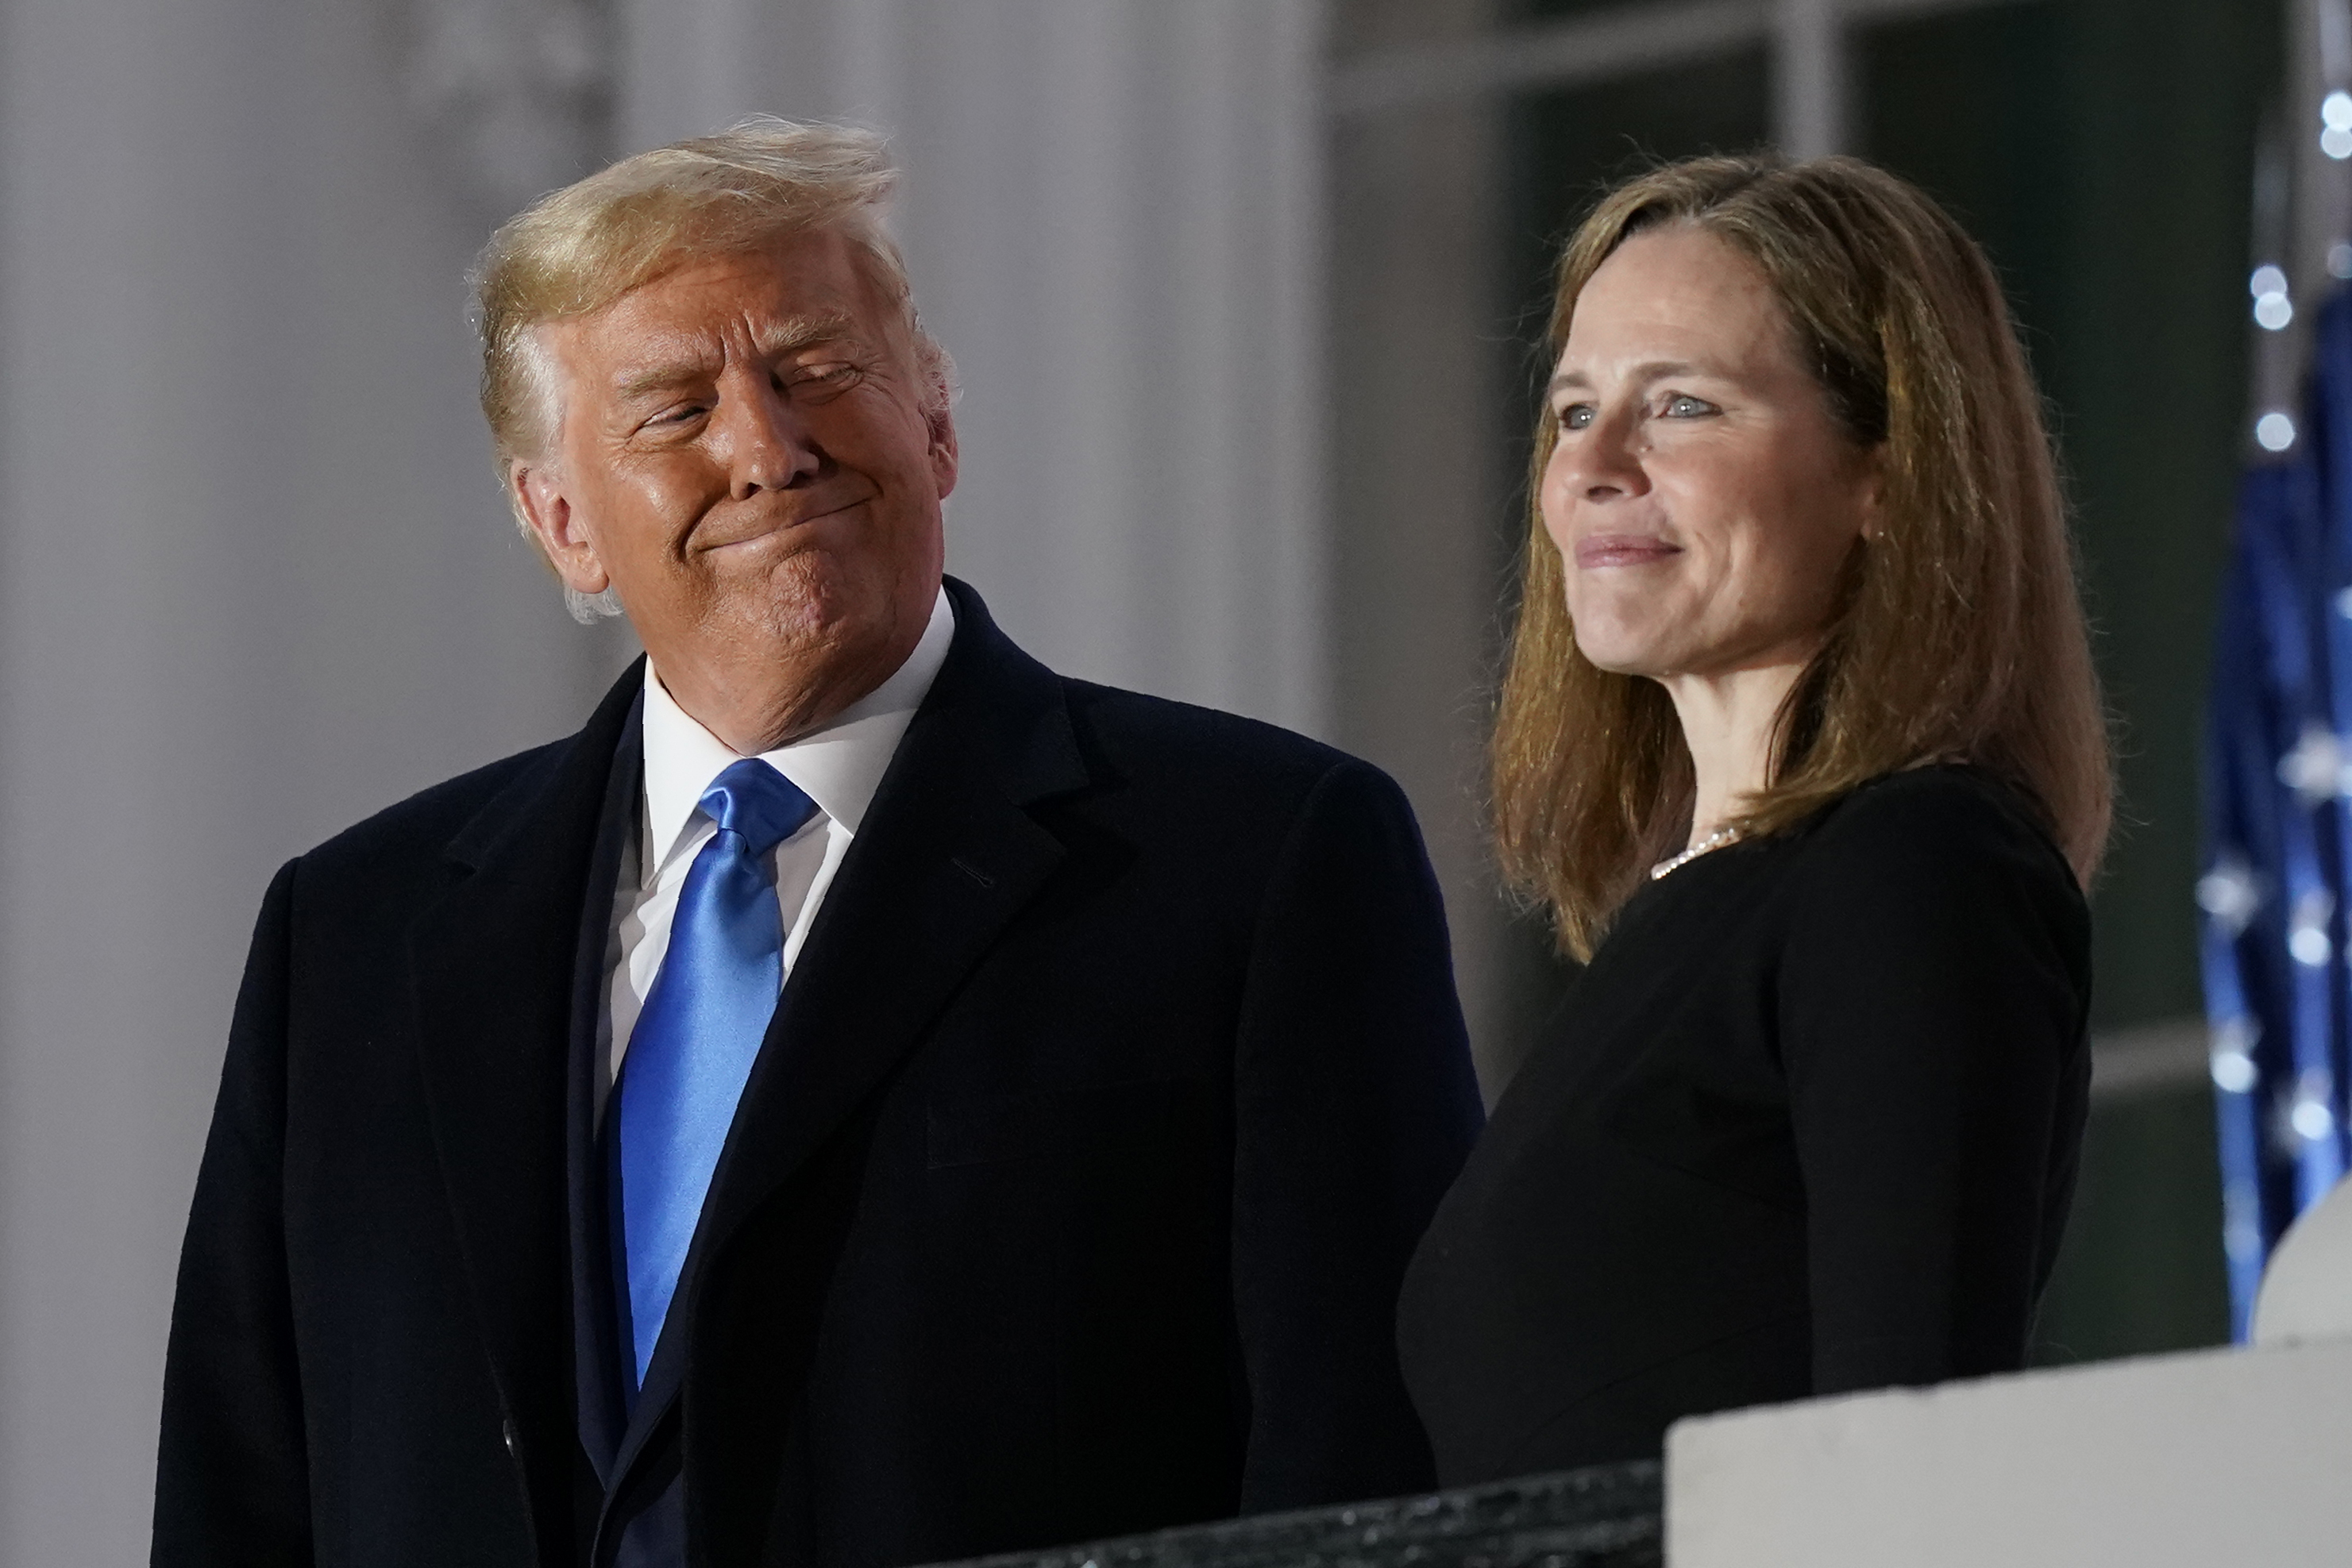 Amy Coney Barrett Will Consider Cases About Abortion, Obamacare, and LGBTQ Rights